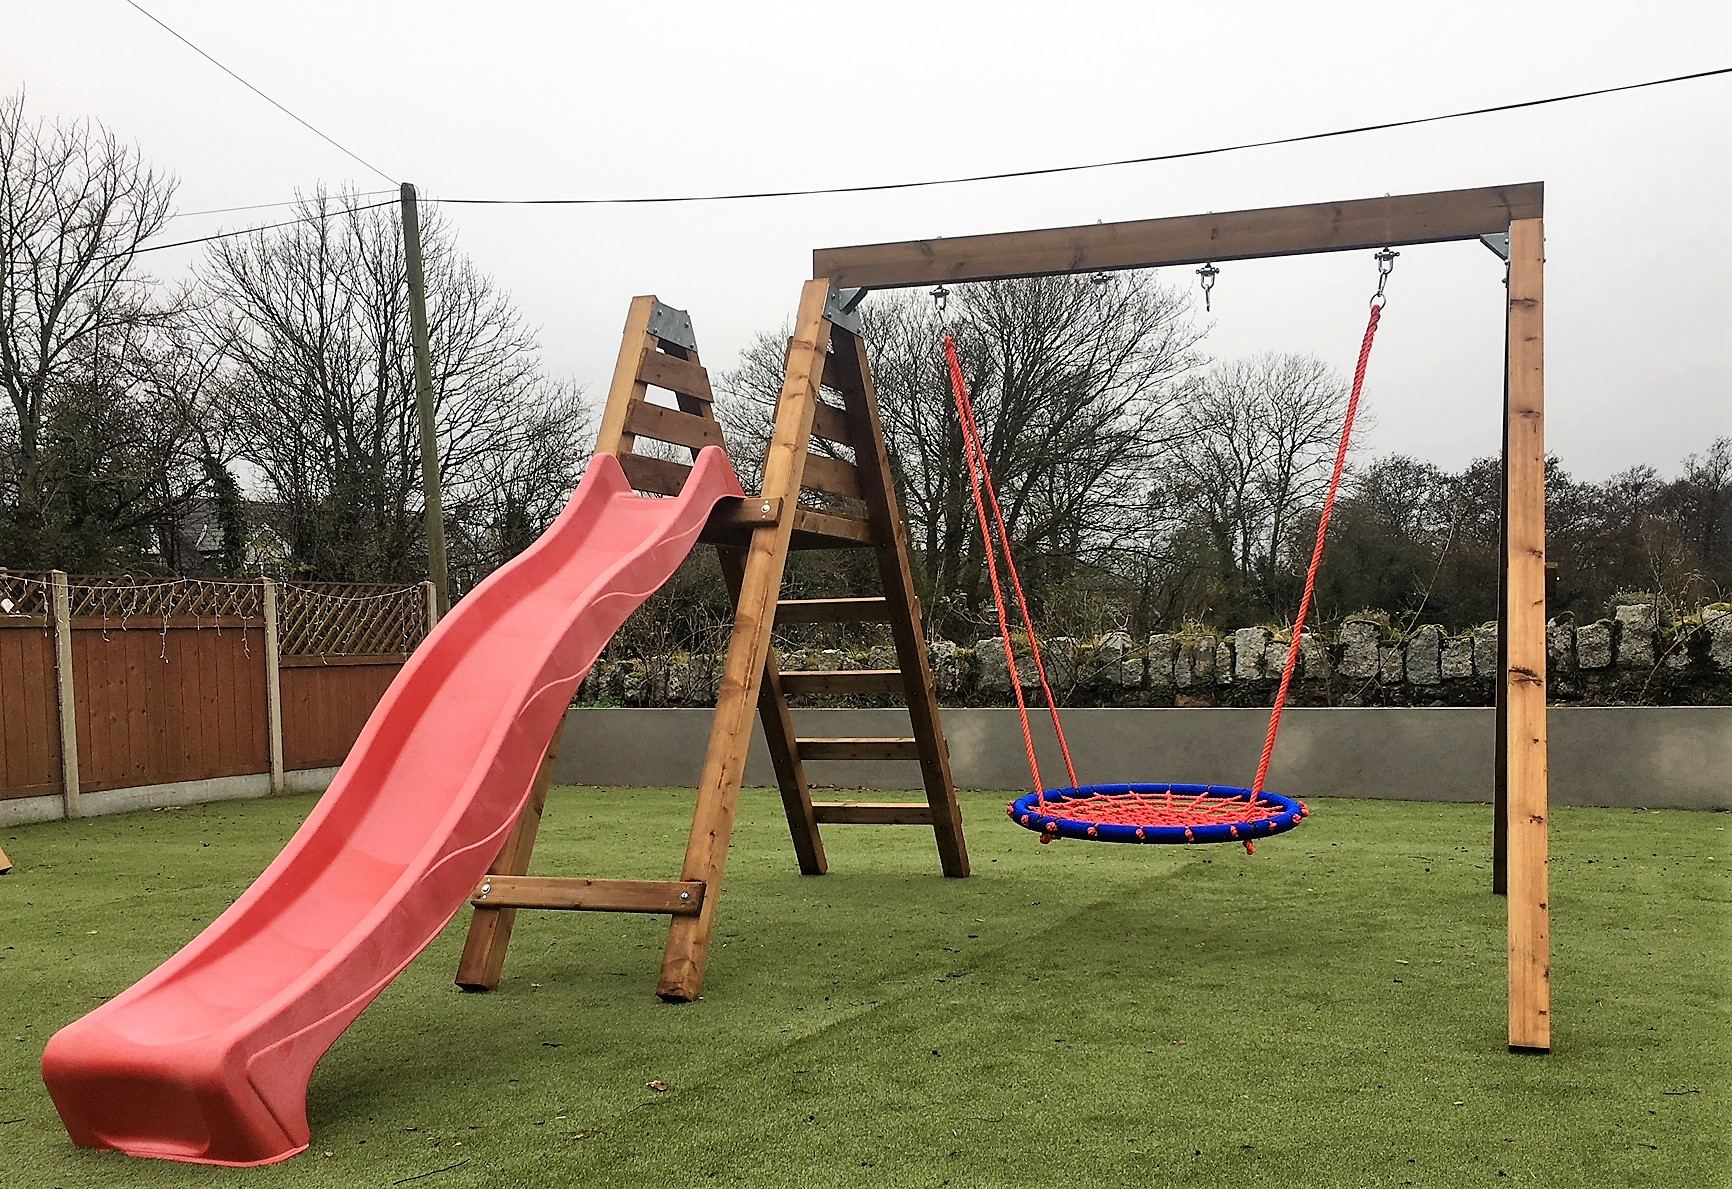 Heavy duty nest,basket swing and slide set.